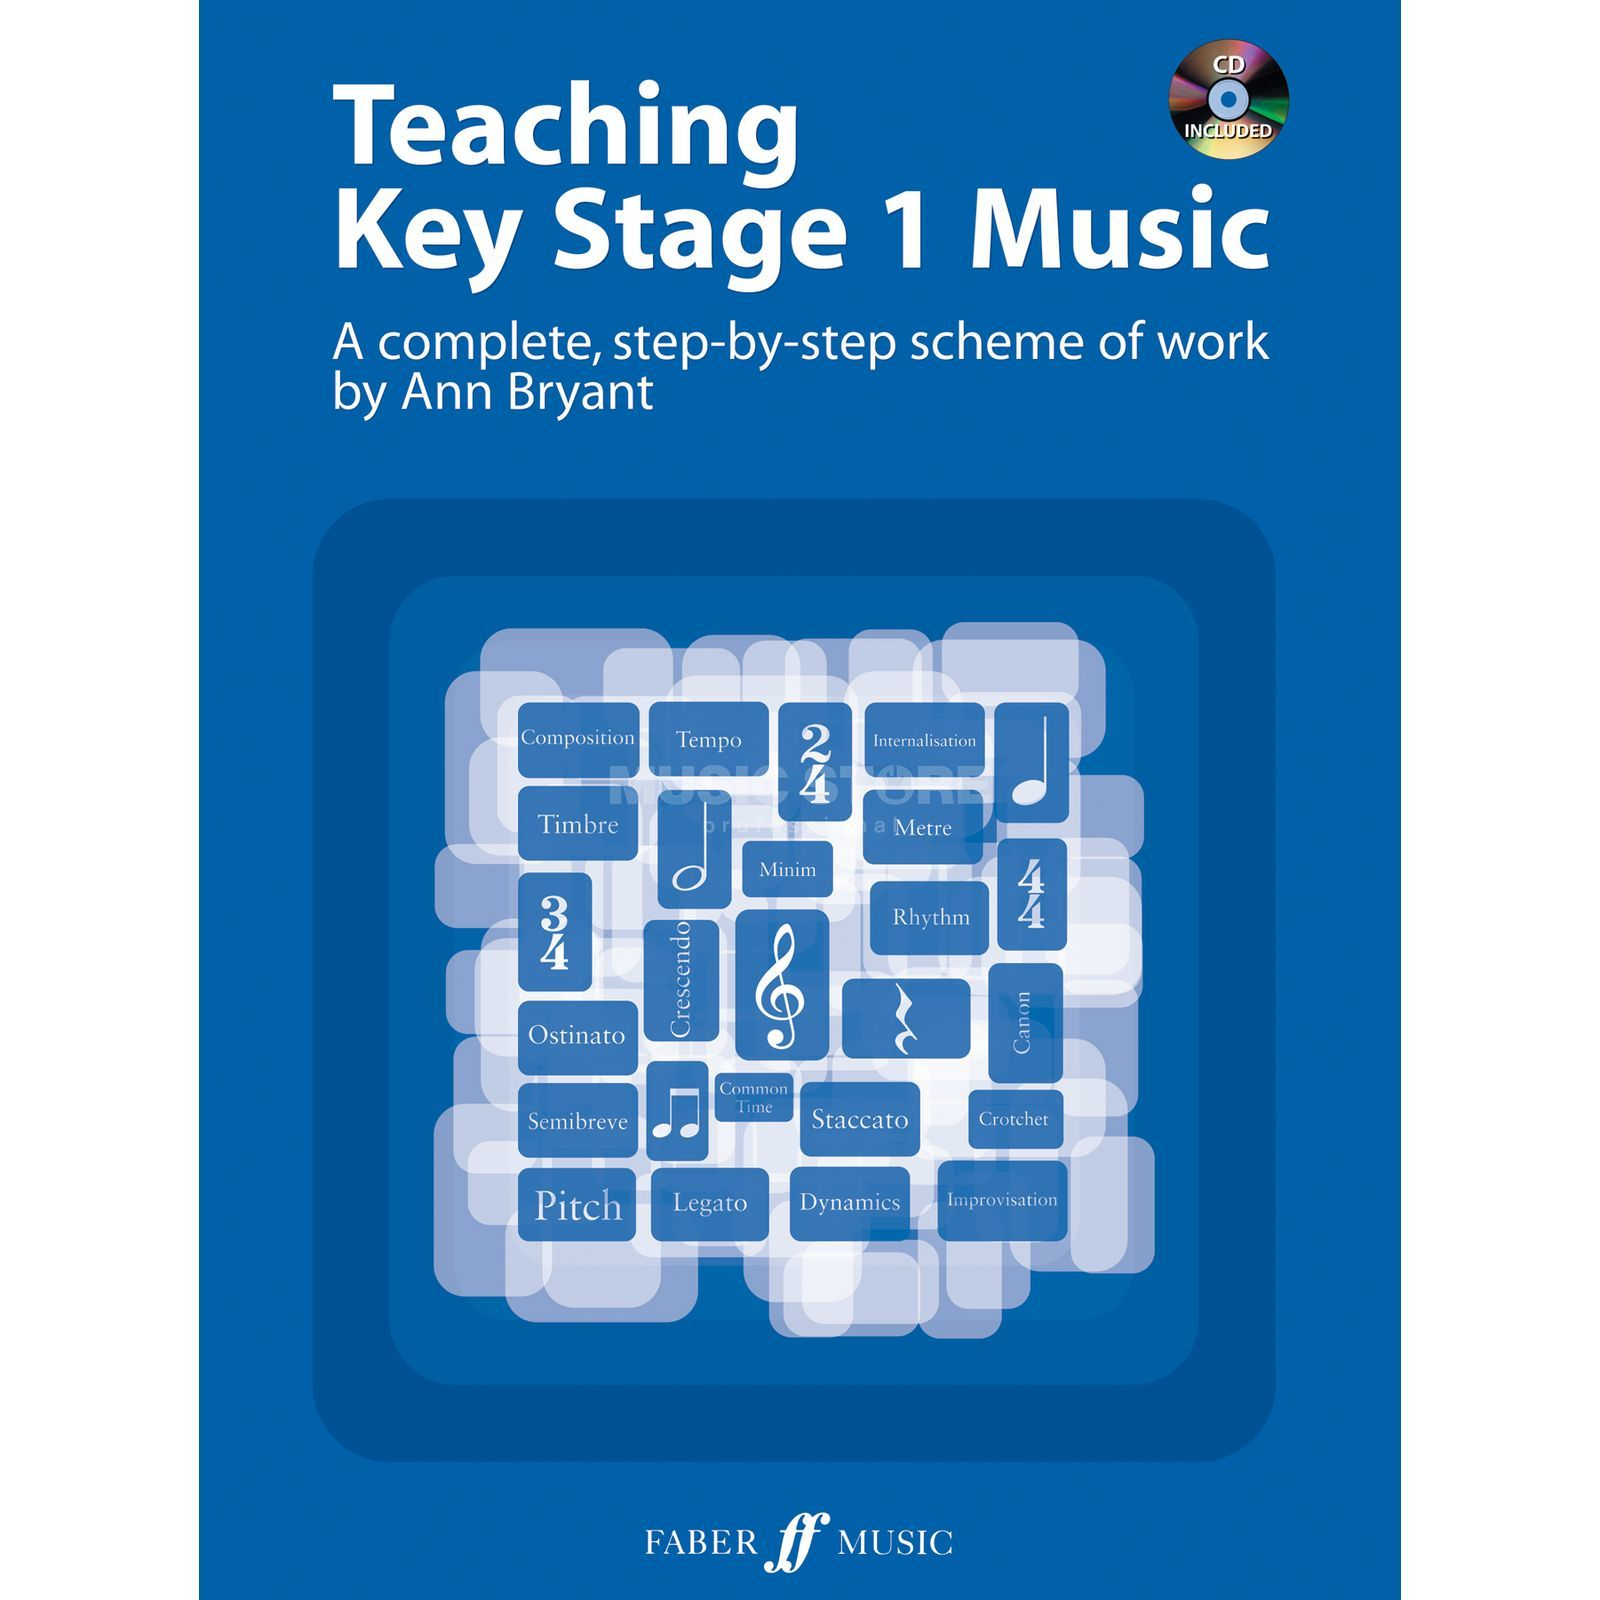 Faber Music Teaching Key Stage 1 Music CD, Ann Bryant Produktbild